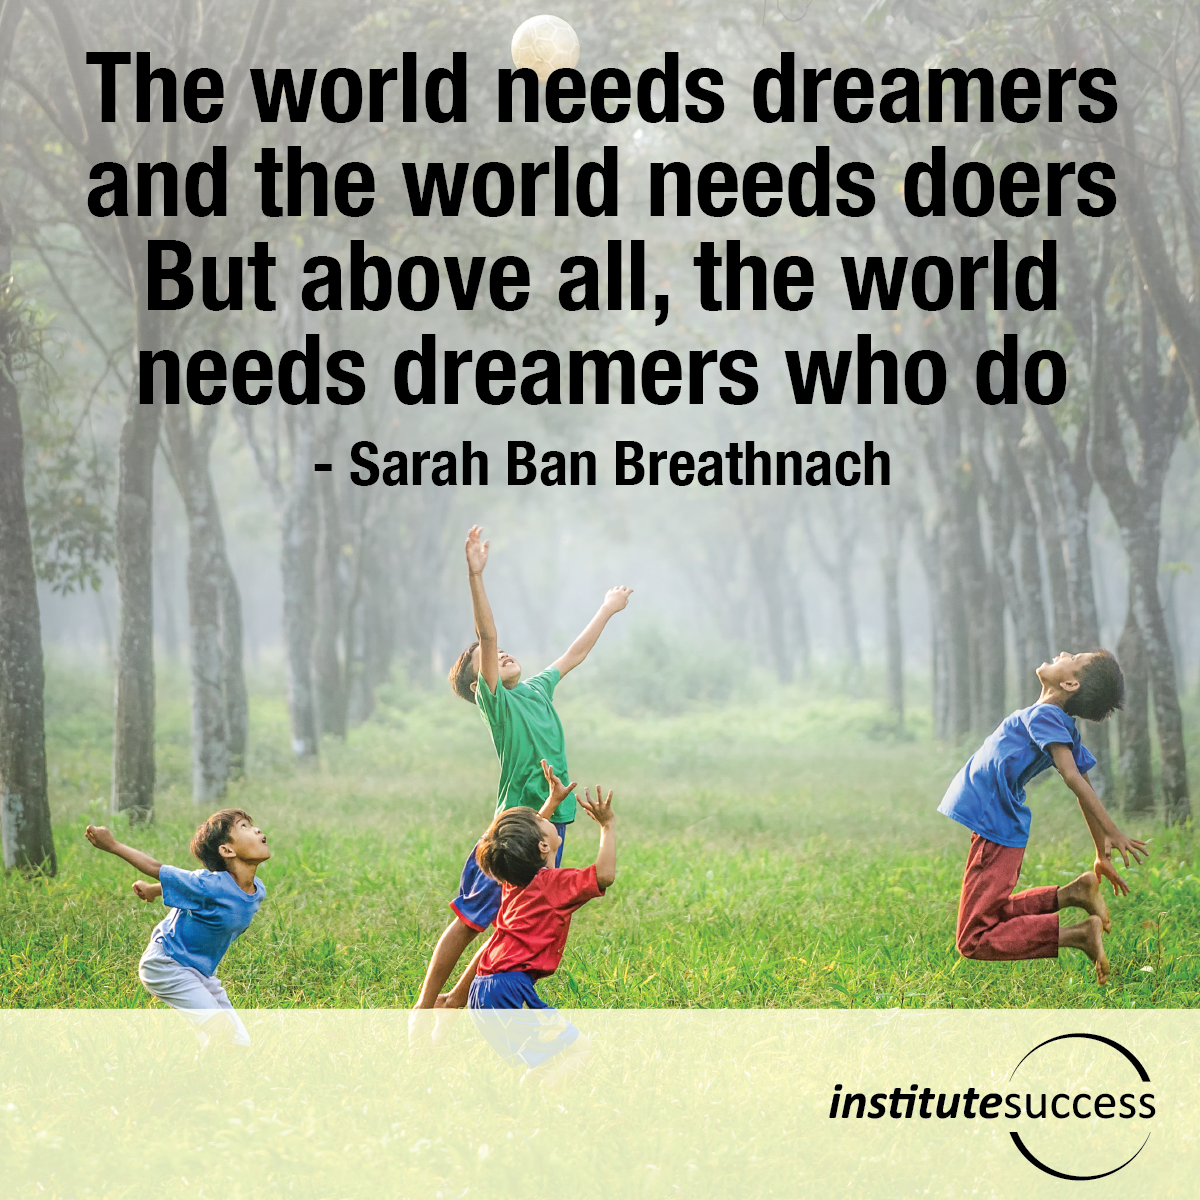 The world needs dreamers and the world needs doers. But above all, the world needs dreamers who do – Sarah Ban Breathnach